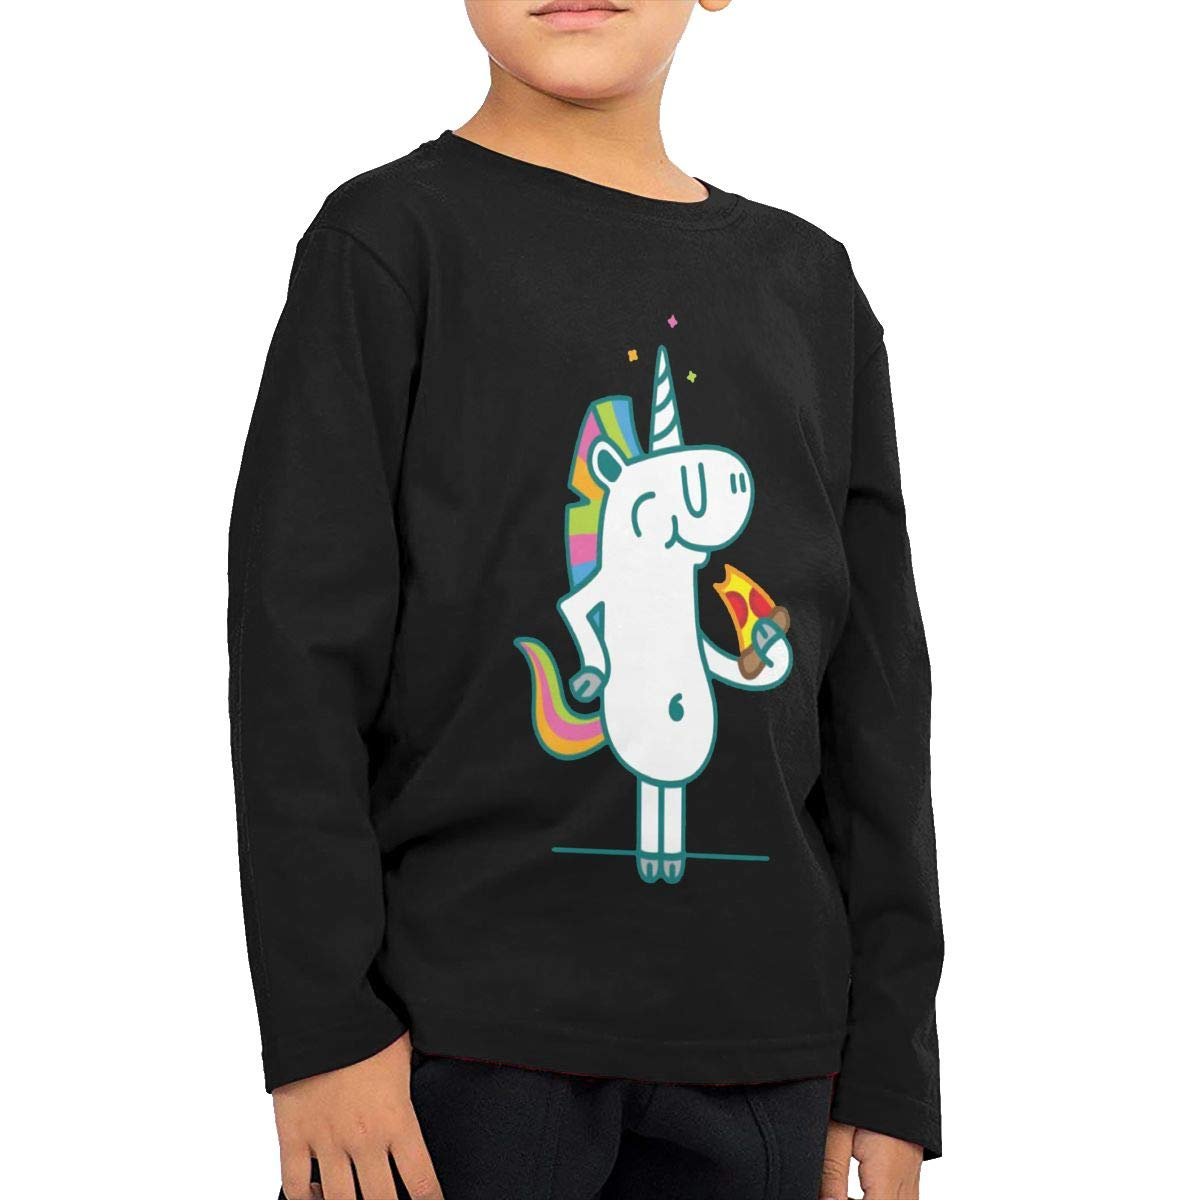 Magical Slice Unicorn Pizza Heaven Childrens Black Cotton Long Sleeve Round Neck T-Shirt for Boy Or Girl